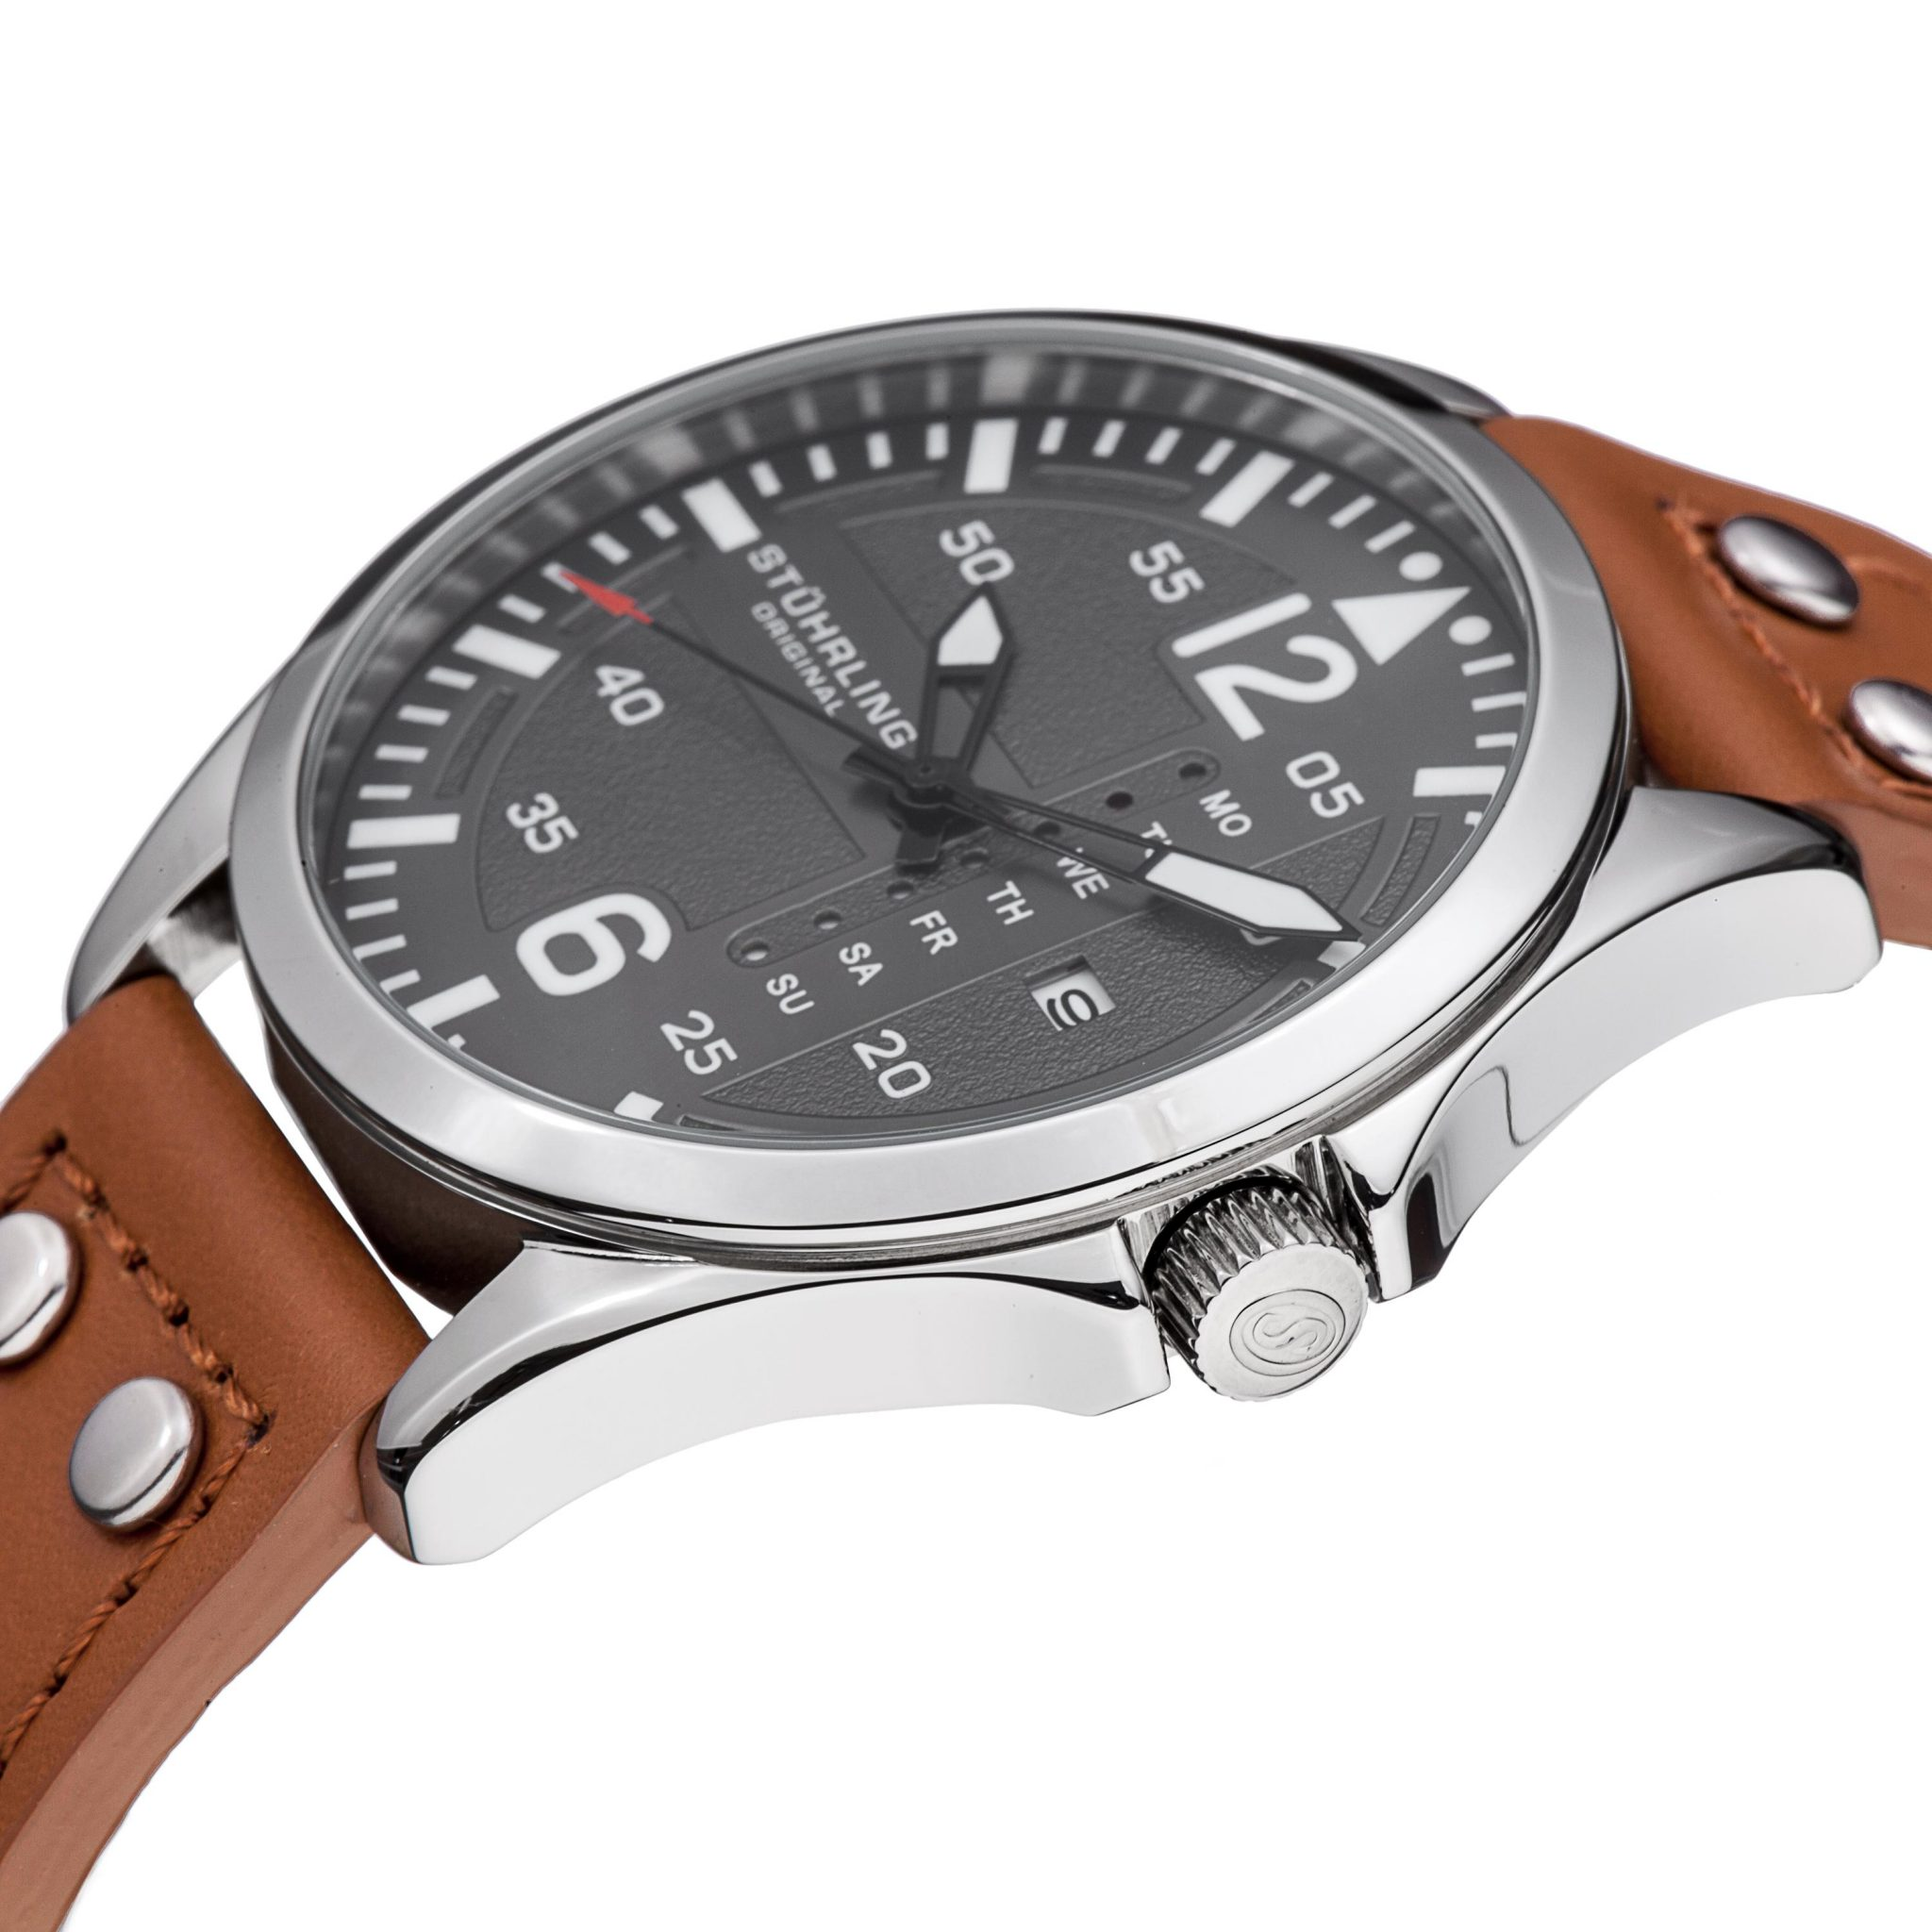 Budget Time: The Best Watches Under $100 16